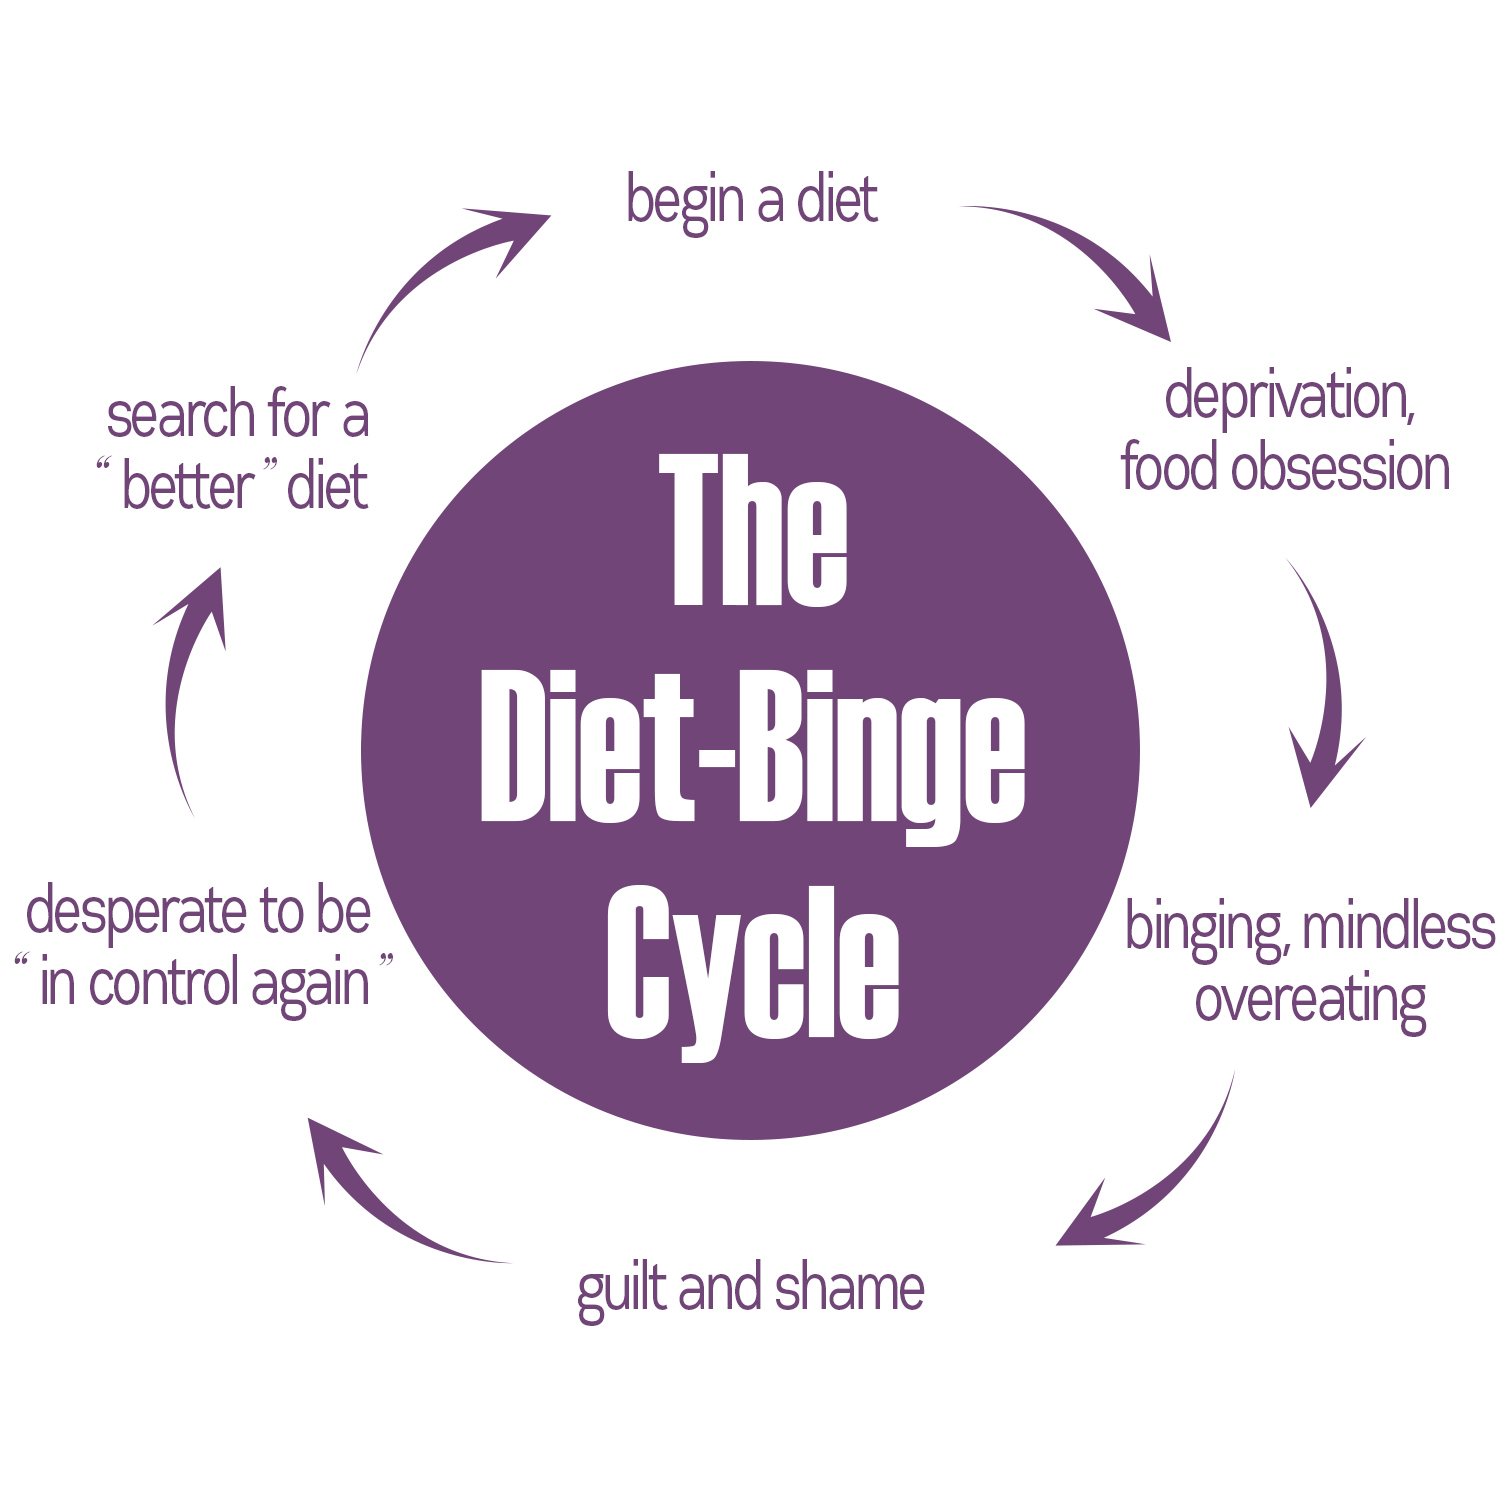 Diet-Binge Cycle Graphic